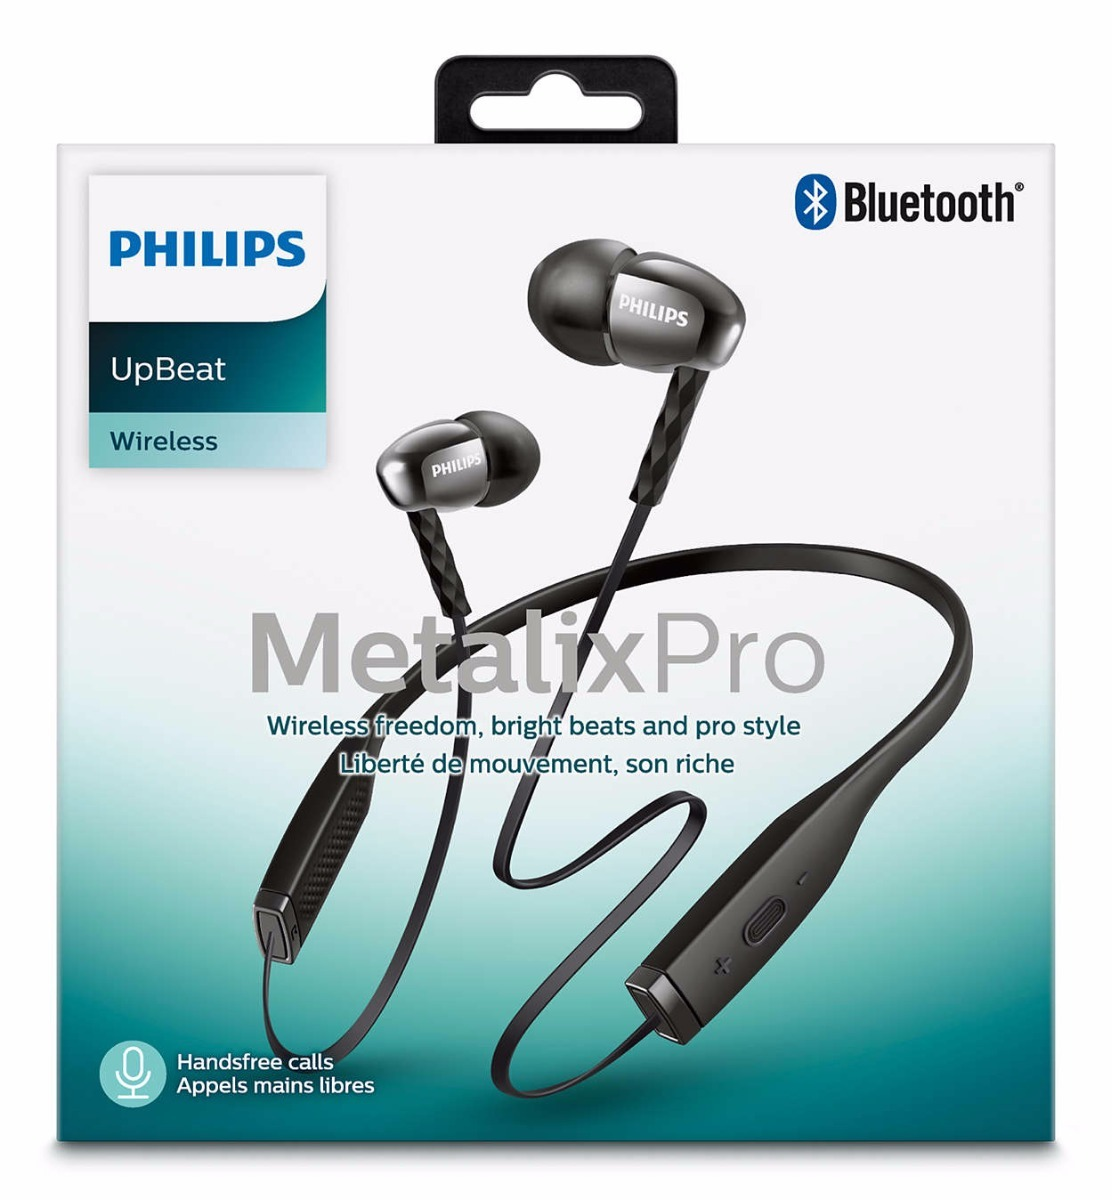 AURICULARES PHILIPS SHB-5950/BK METALIXPRO STYLE BLUETOOTH H